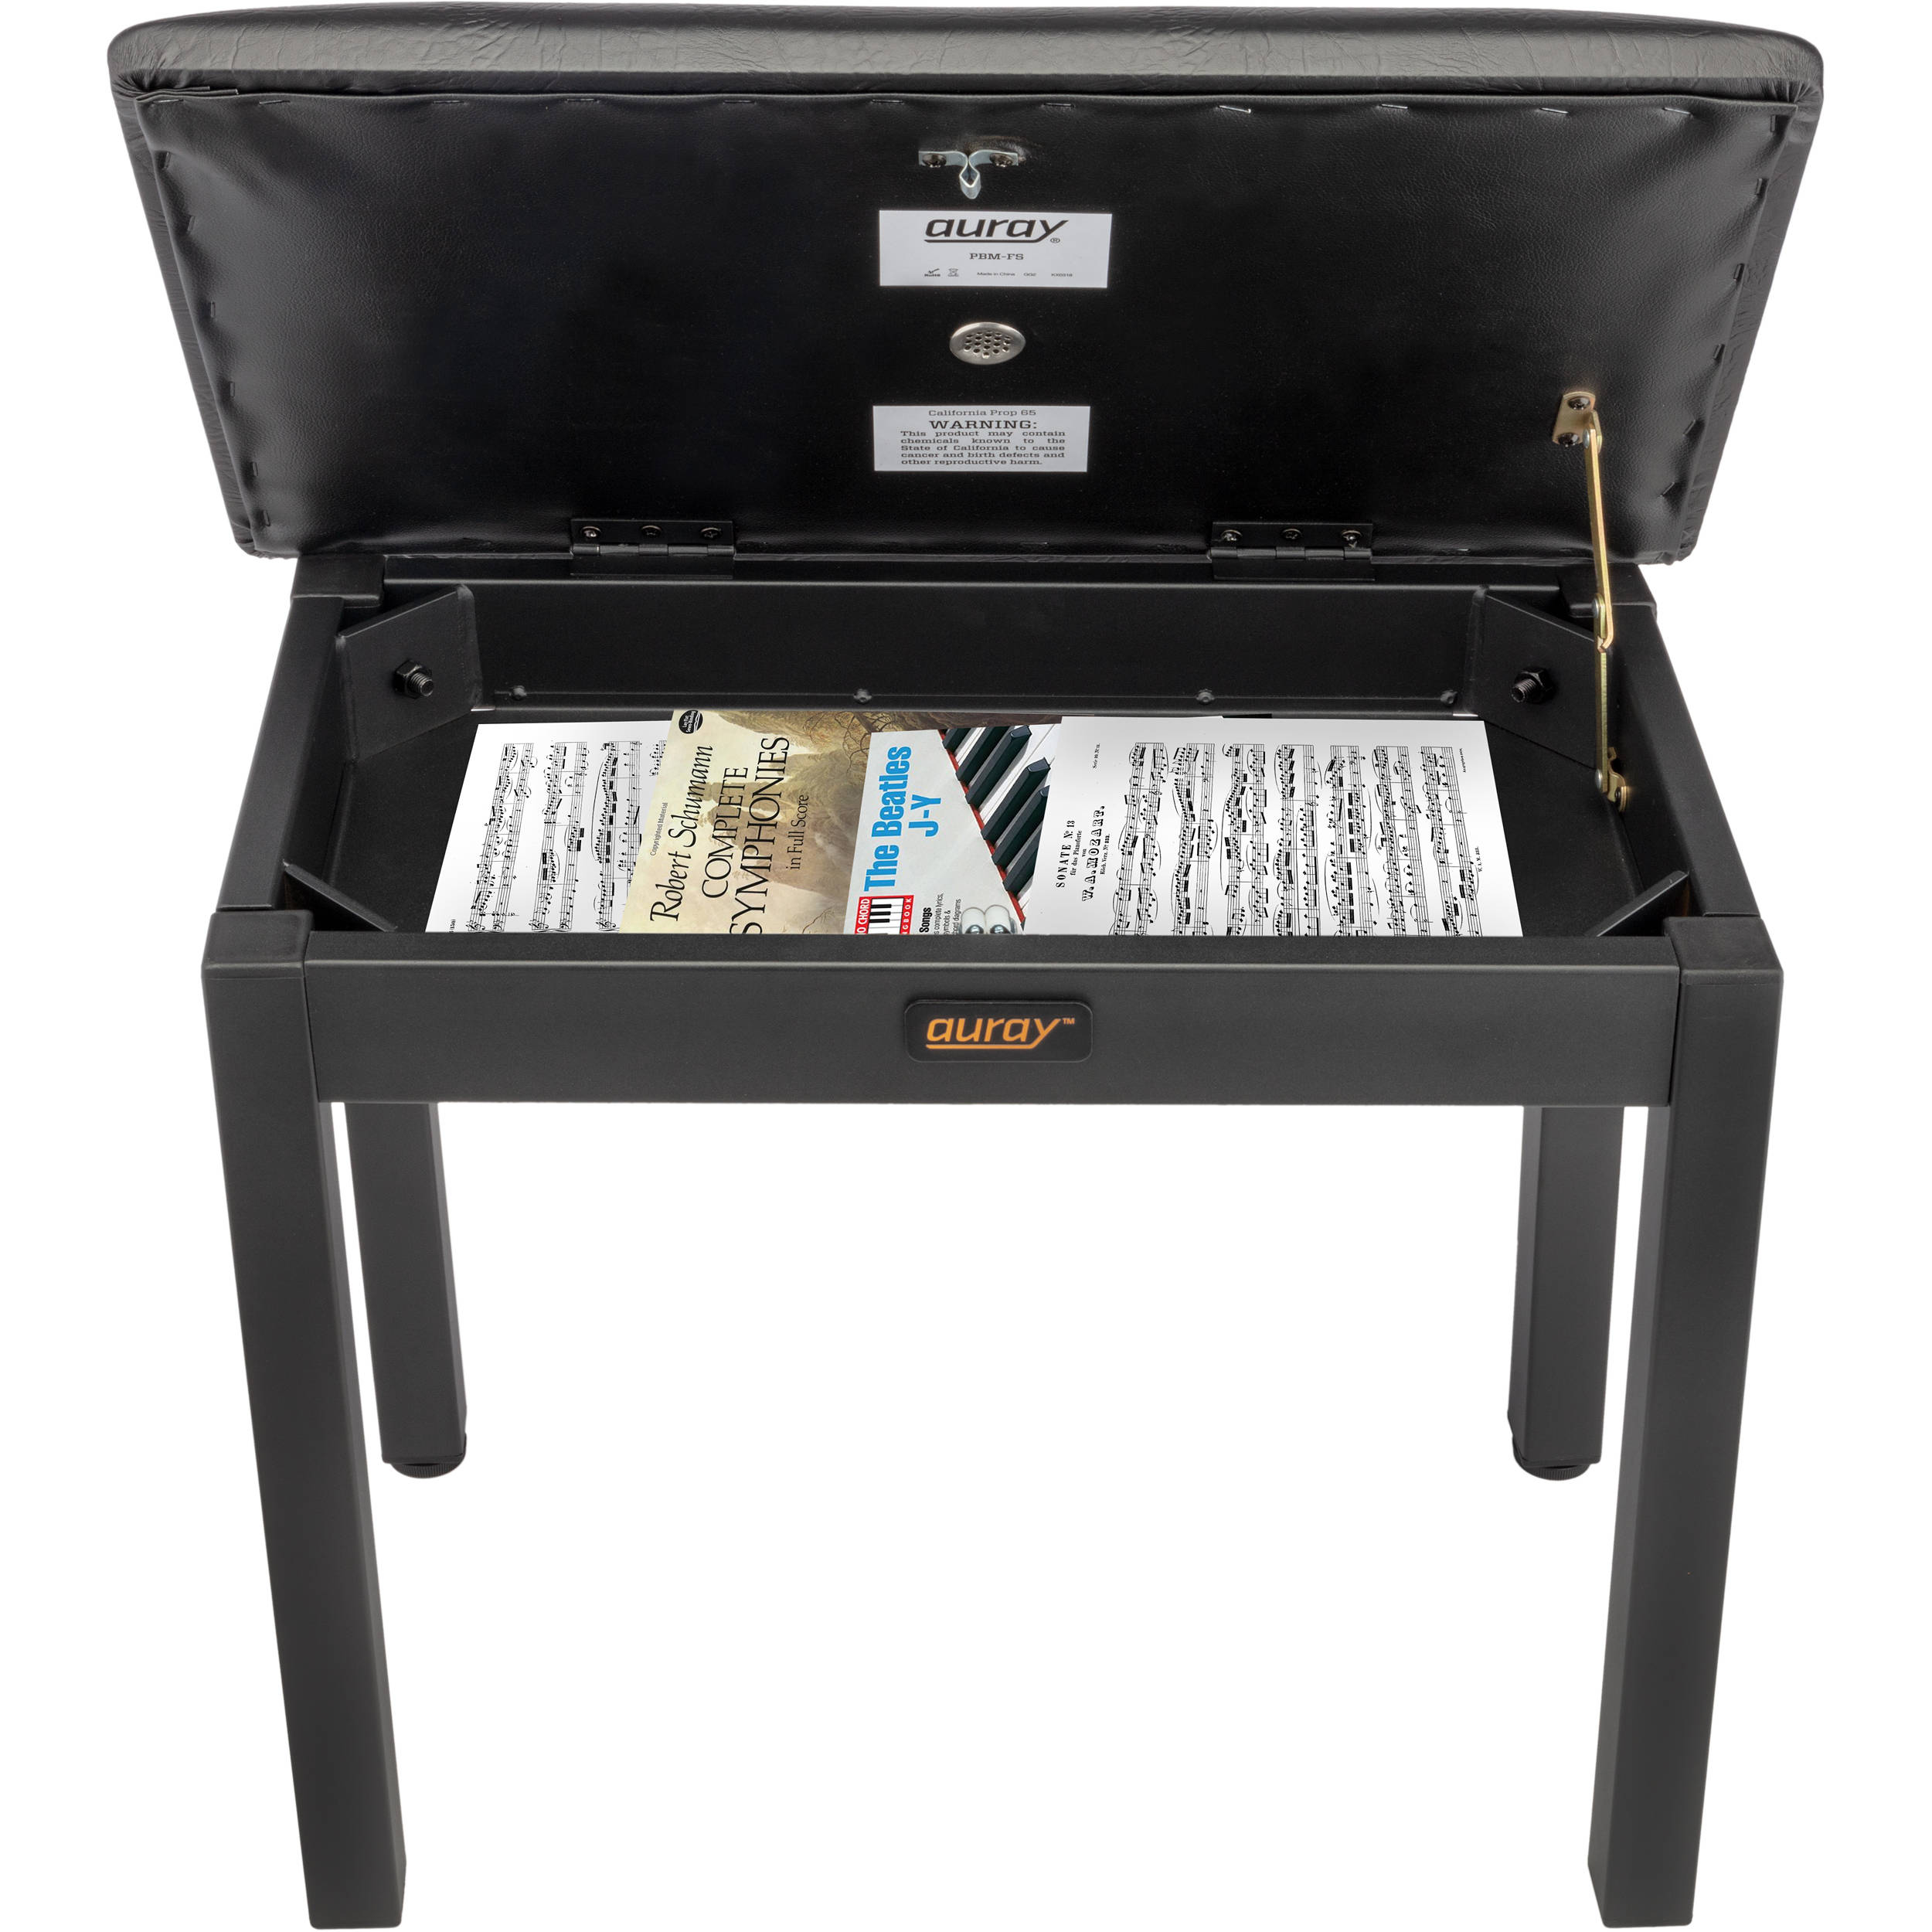 Stupendous Auray Pbm Fs Metal Frame Piano Bench With Storage Black Pabps2019 Chair Design Images Pabps2019Com